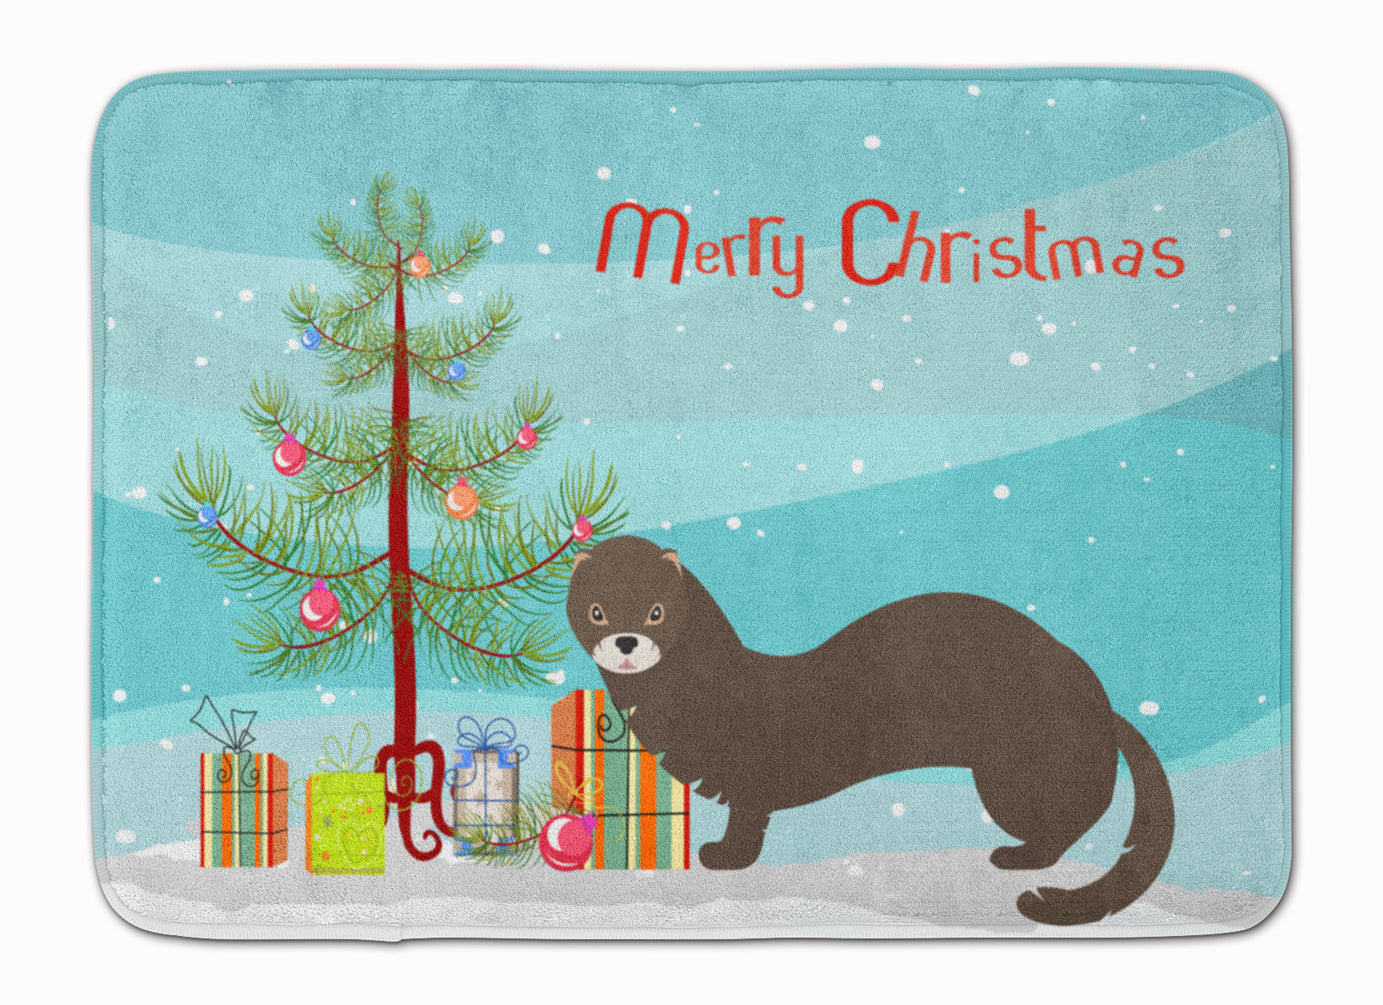 Russian or European Mink Christmas Machine Washable Memory Foam Mat BB9235RUG by Caroline's Treasures